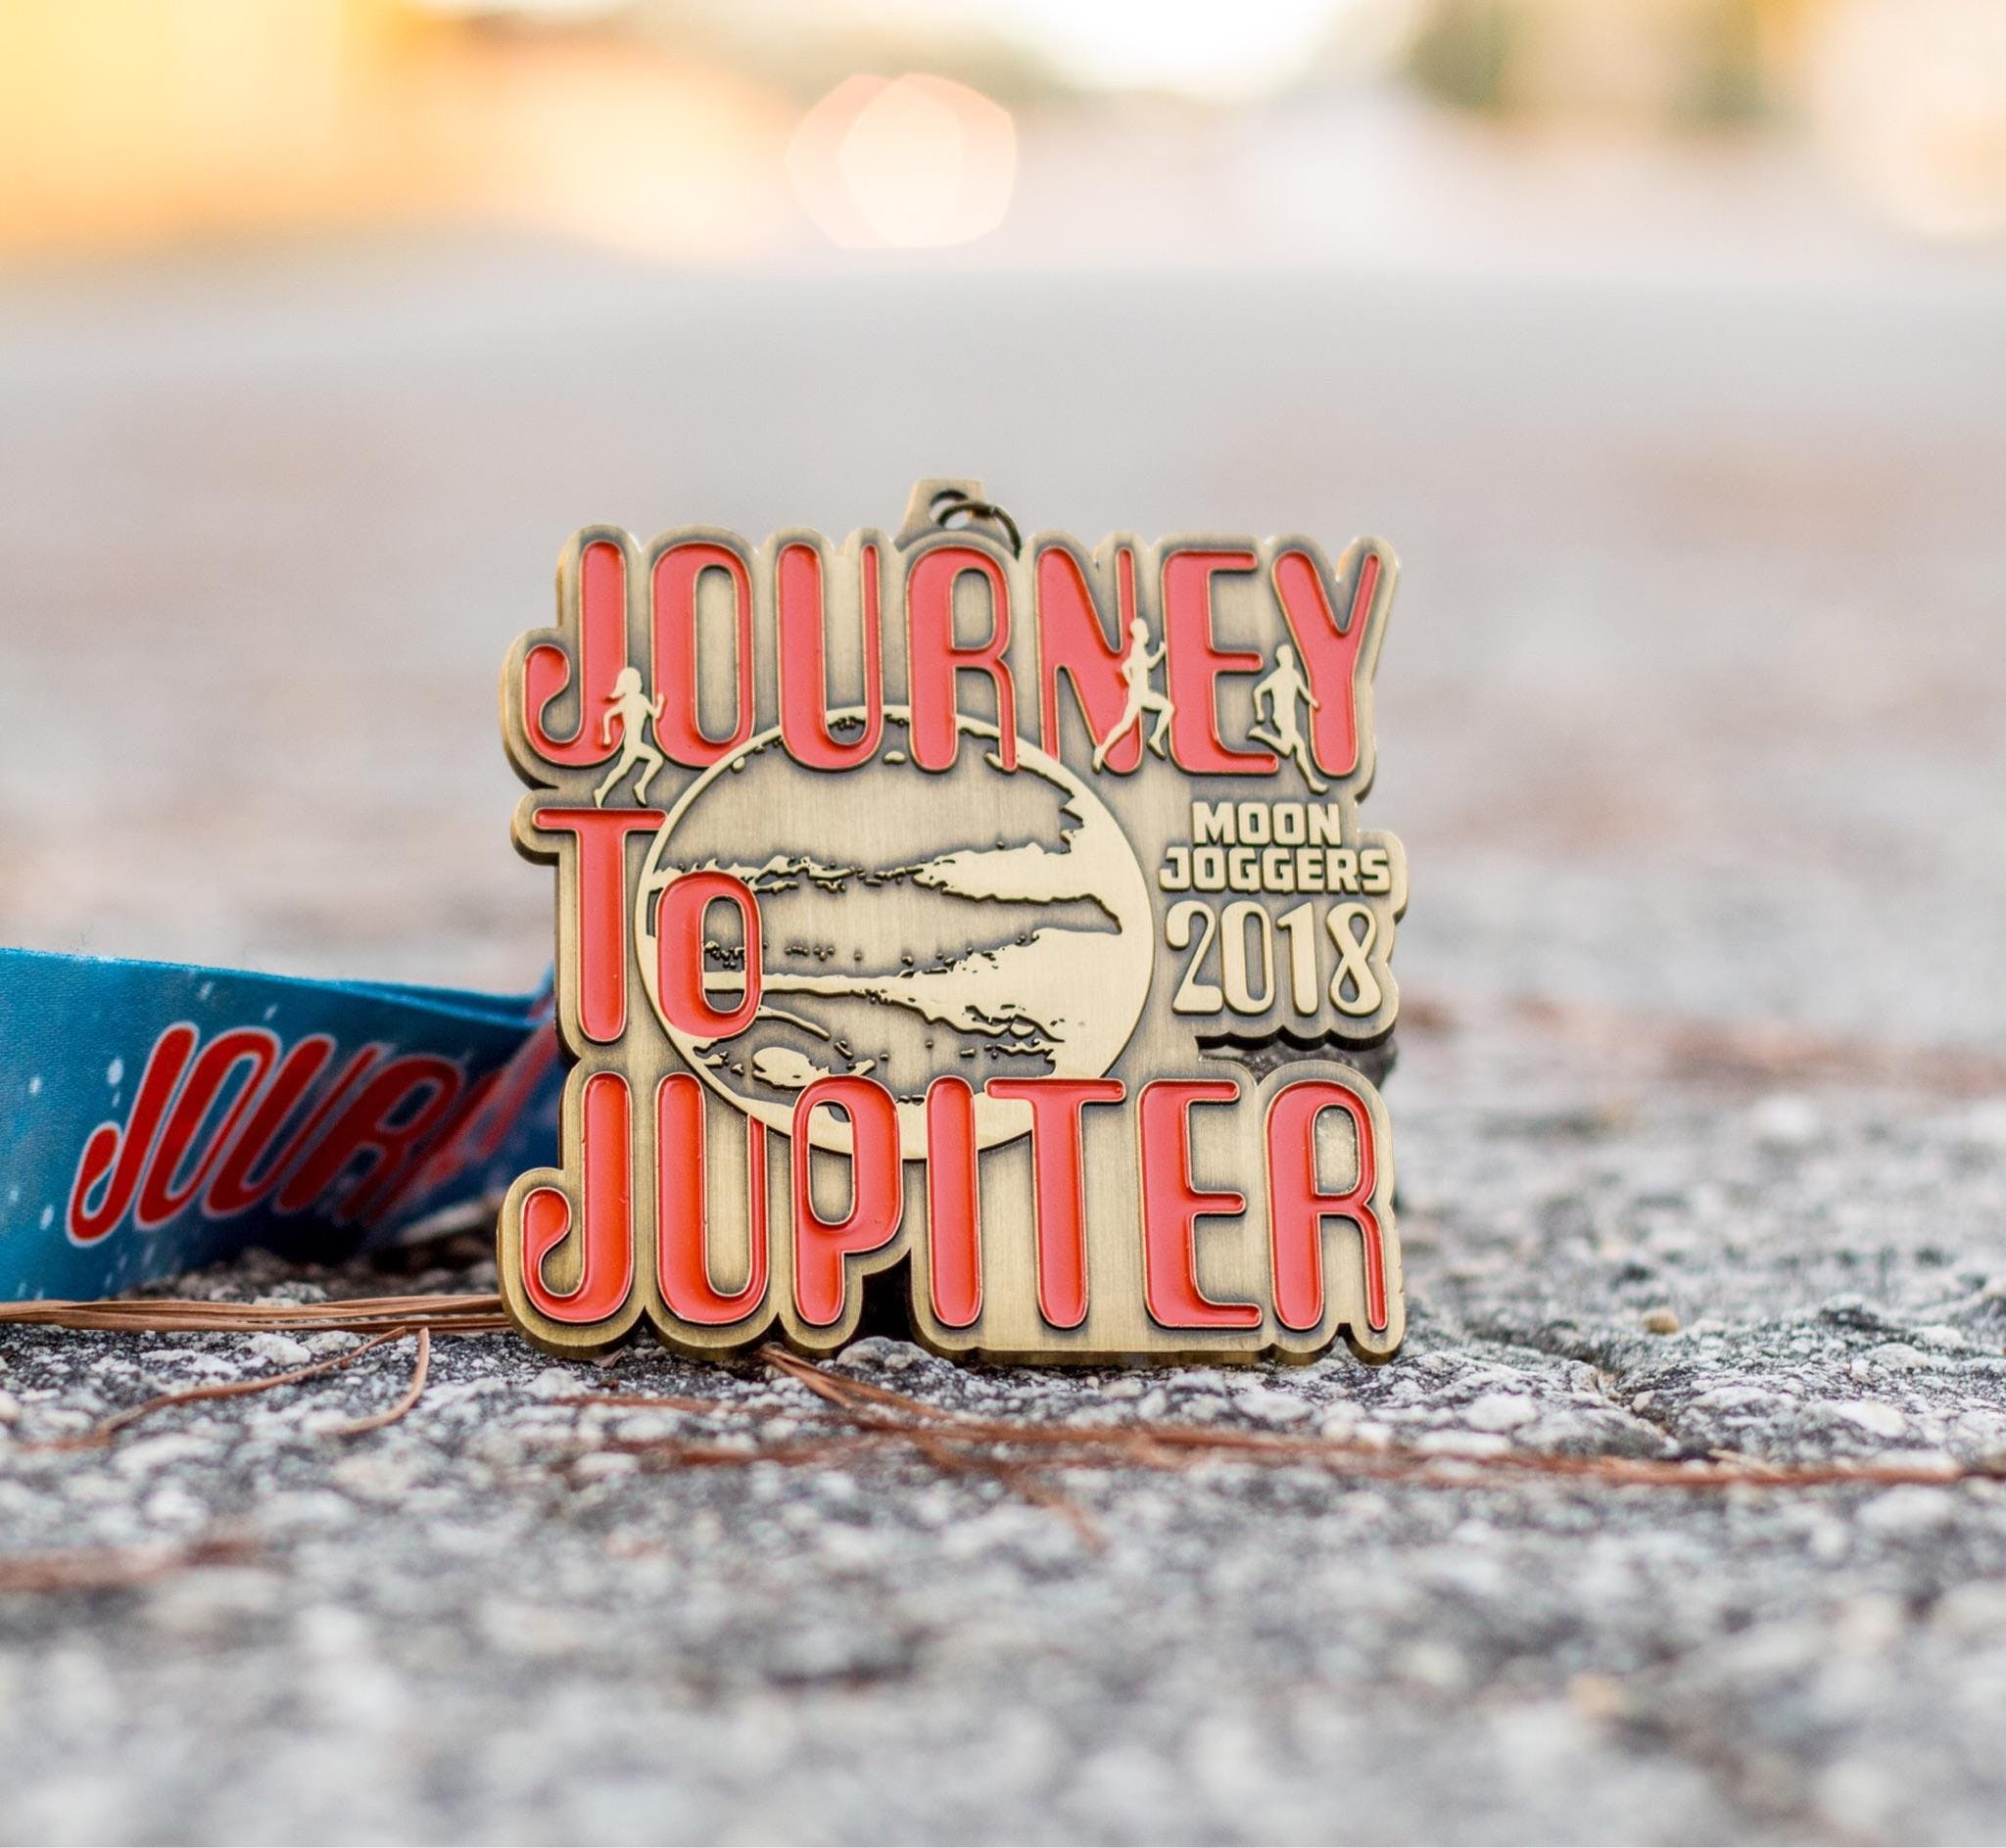 Only $12! Journey to Jupiter Running & Walking Challenge -Boston